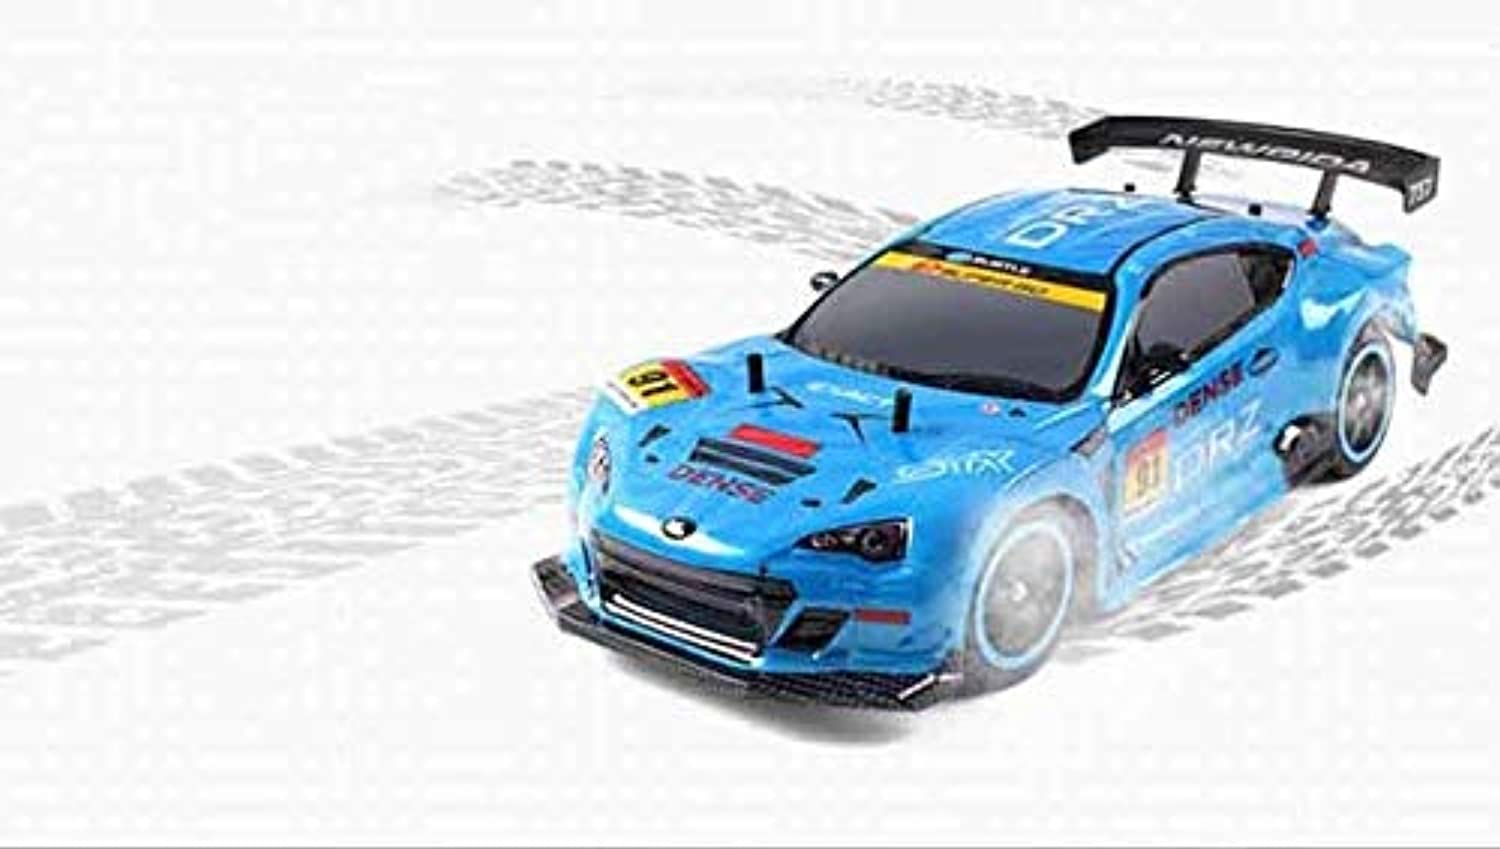 Generic RC Car 1 10 High Speed Racing Car for Nissan GTR Championship 2.4G 4WD Radio Control Sport Drift Racing Electronic Toy bluee